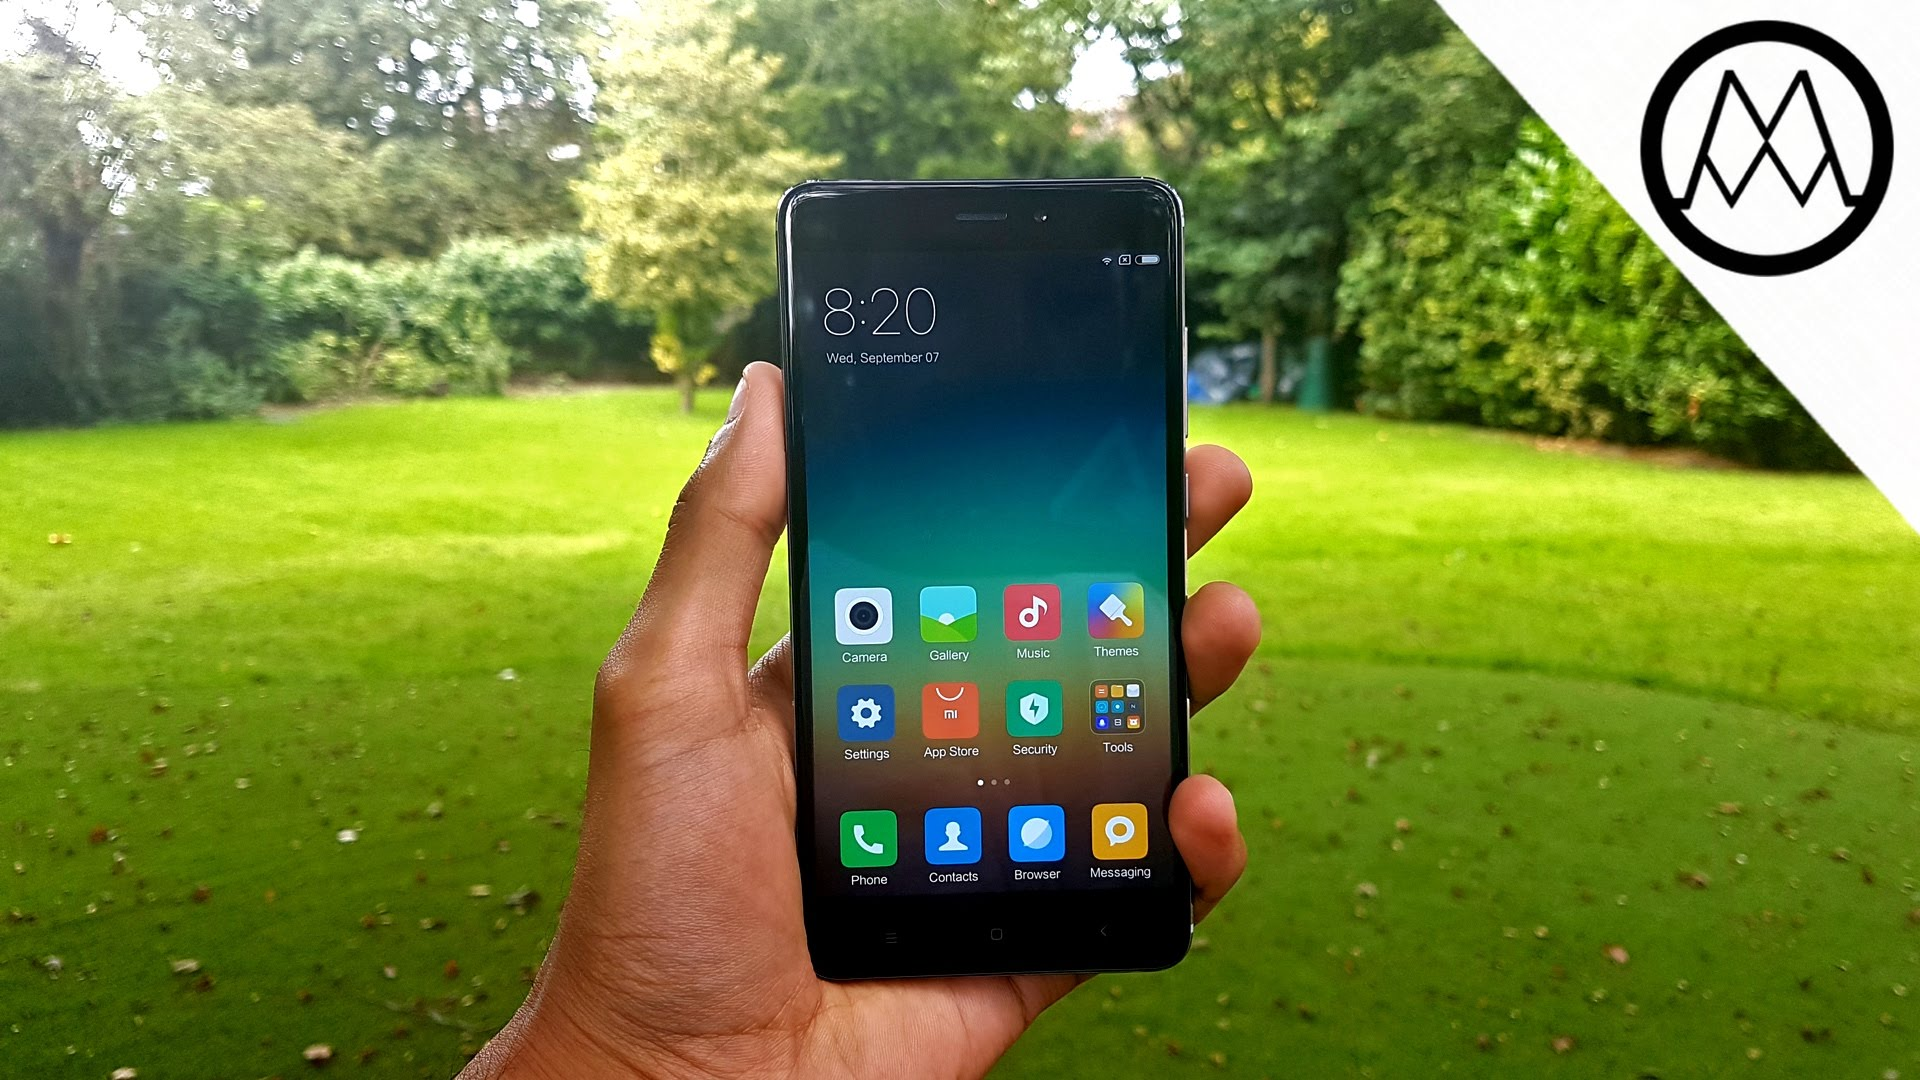 Xiaomi Redmi Note 4 Review The Best Redmi Note Yet: Xiaomi Redmi Note 4 Concept, Design.. Top 3 Alternative